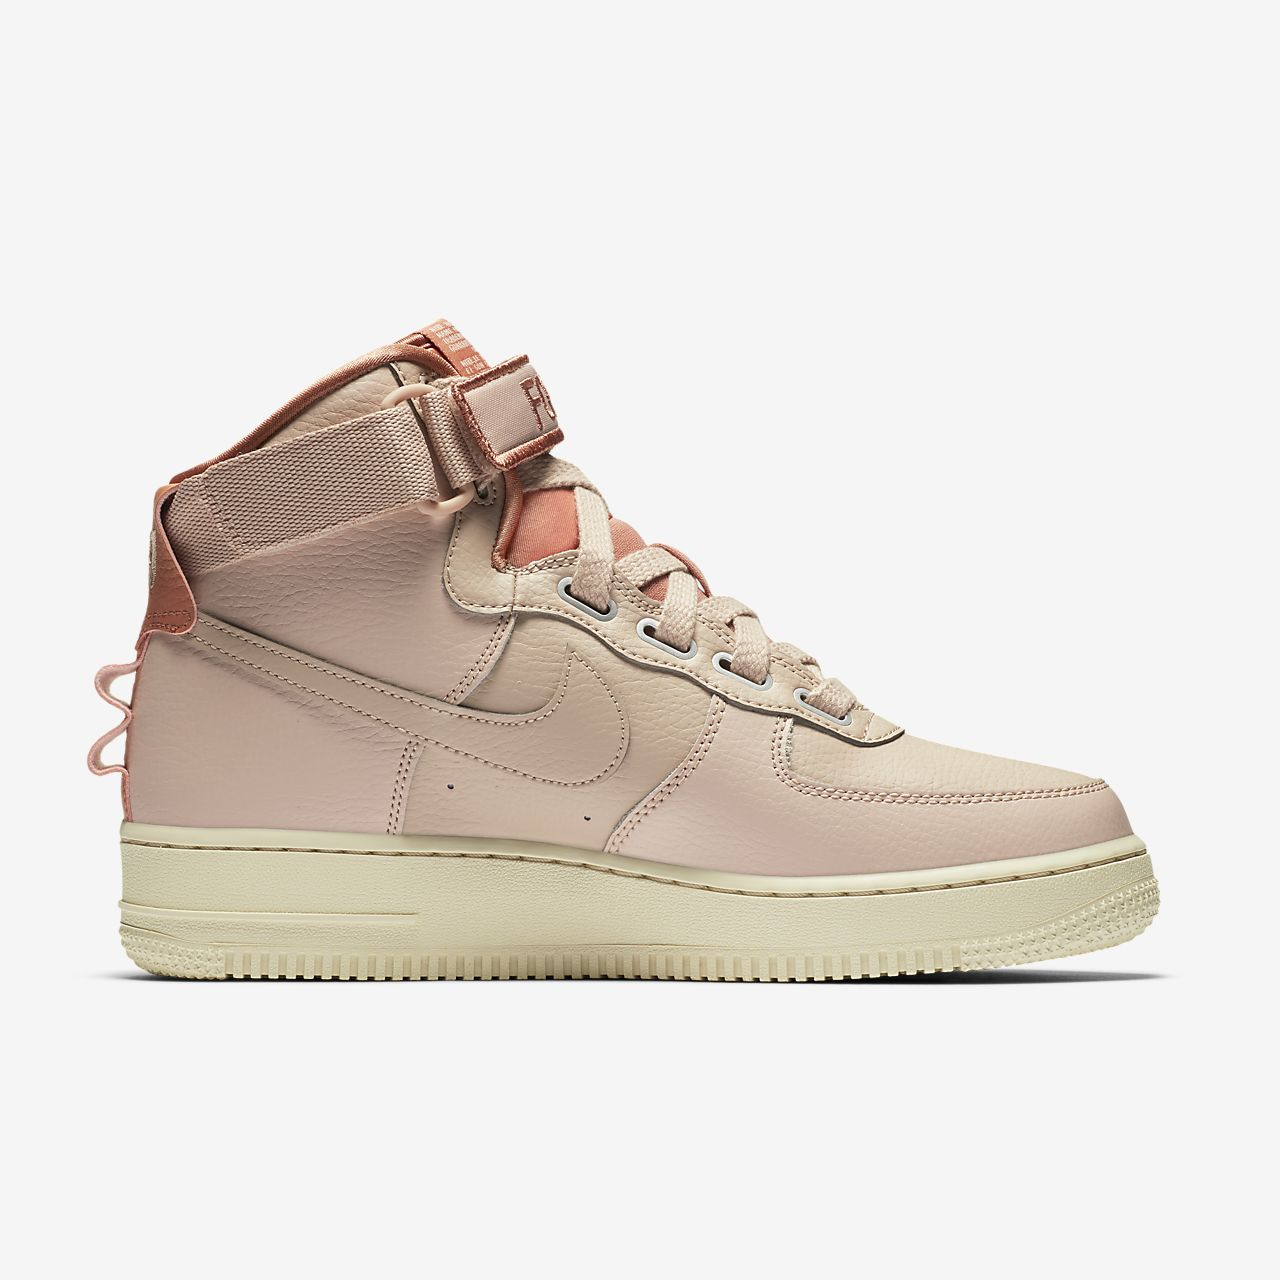 low priced 59e80 641c6 ... Chaussure Nike Air Force 1 High Utility pour Femme